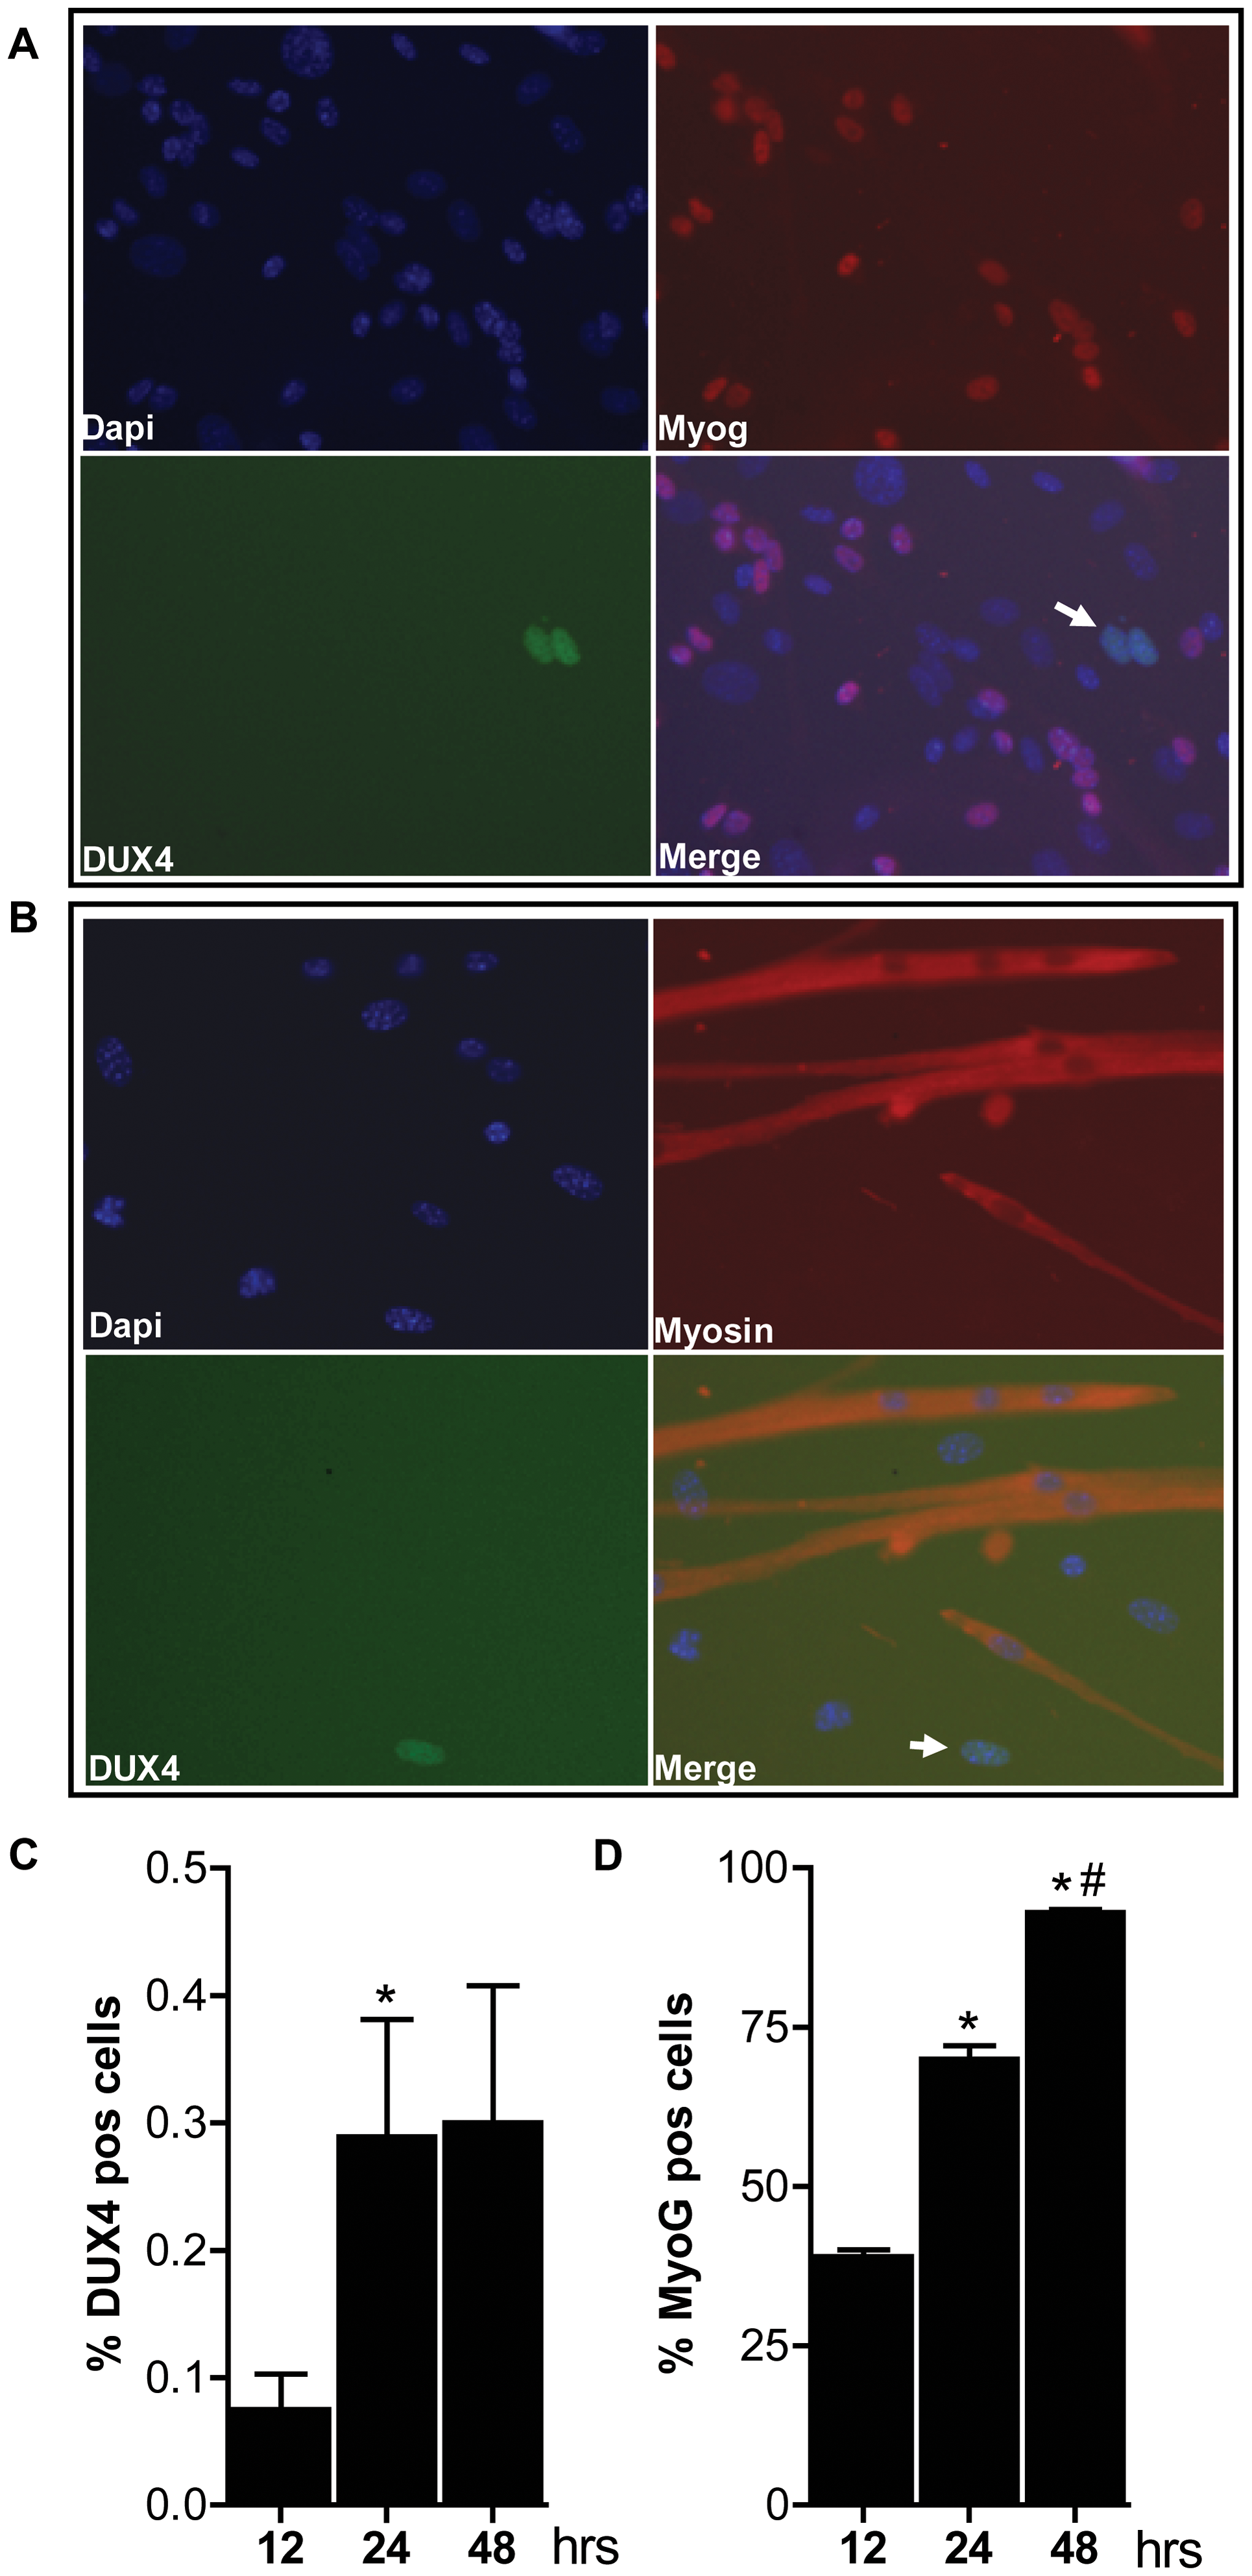 Bursts of DUX4 protein expression in differentiating D4Z4-2.5 muscle cells.